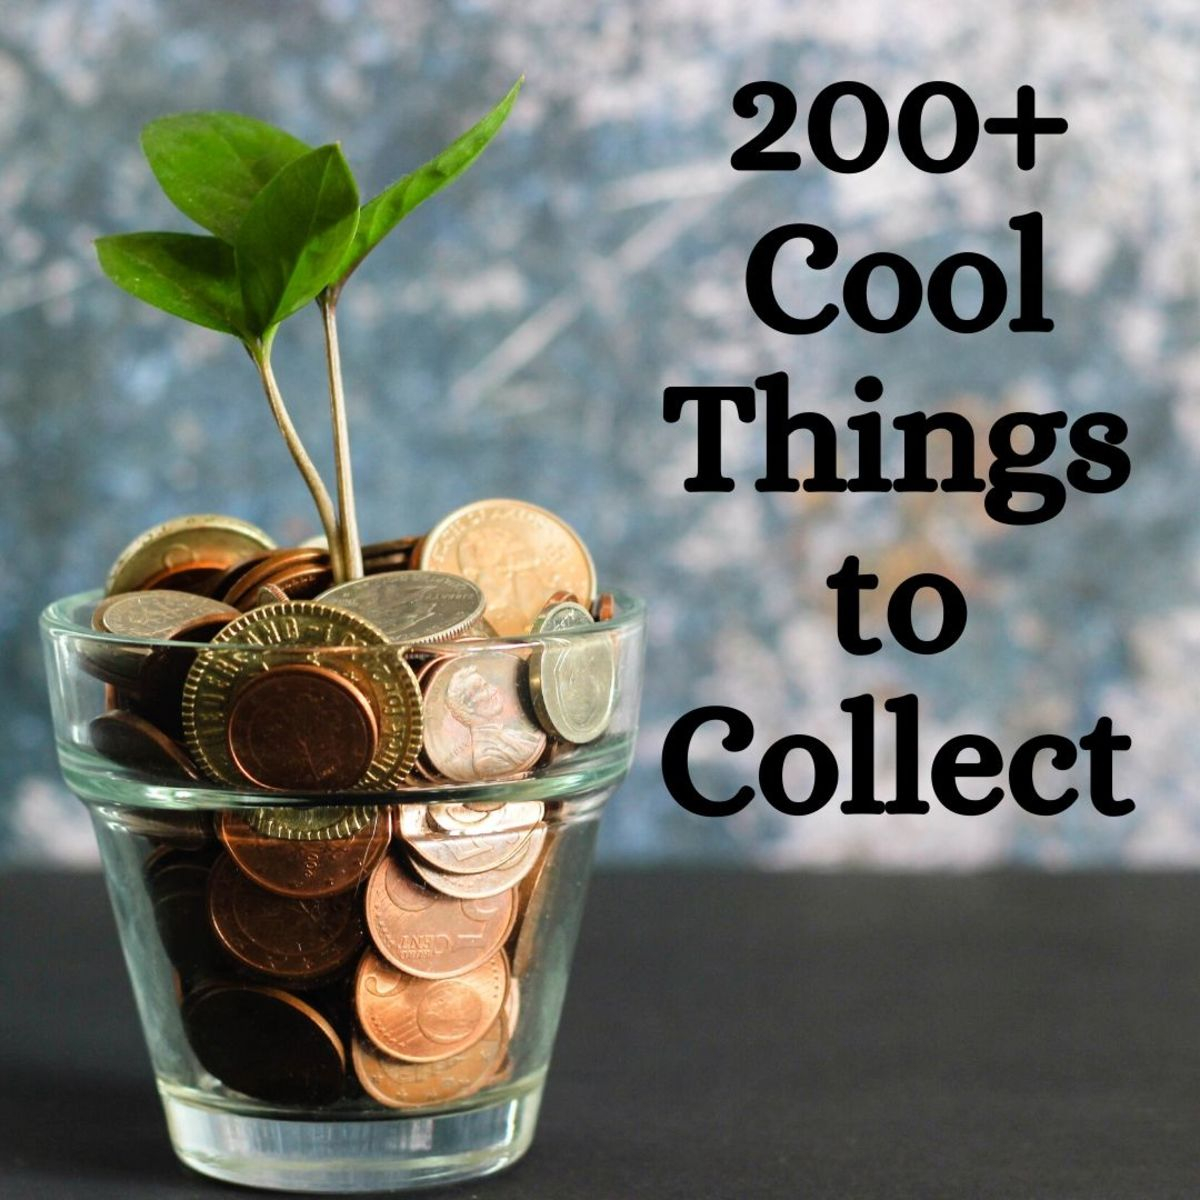 Collecting Ideas: An Exhaustive List of Cool Things to Collect